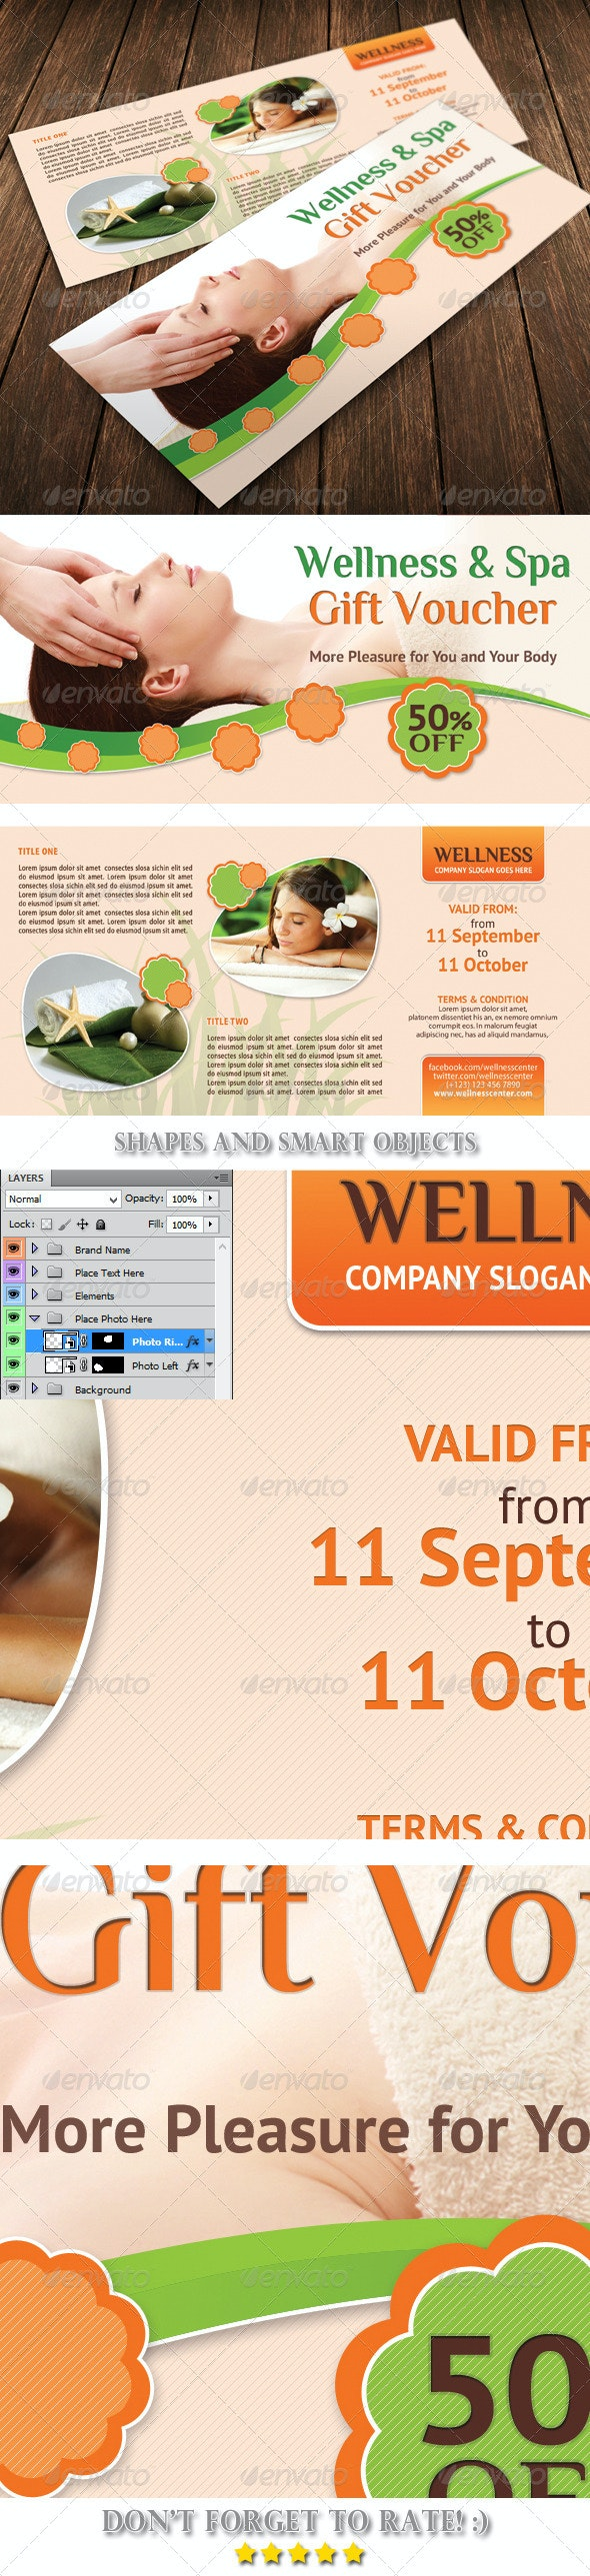 Wellness and Spa Gift Voucher 08 - Cards & Invites Print Templates